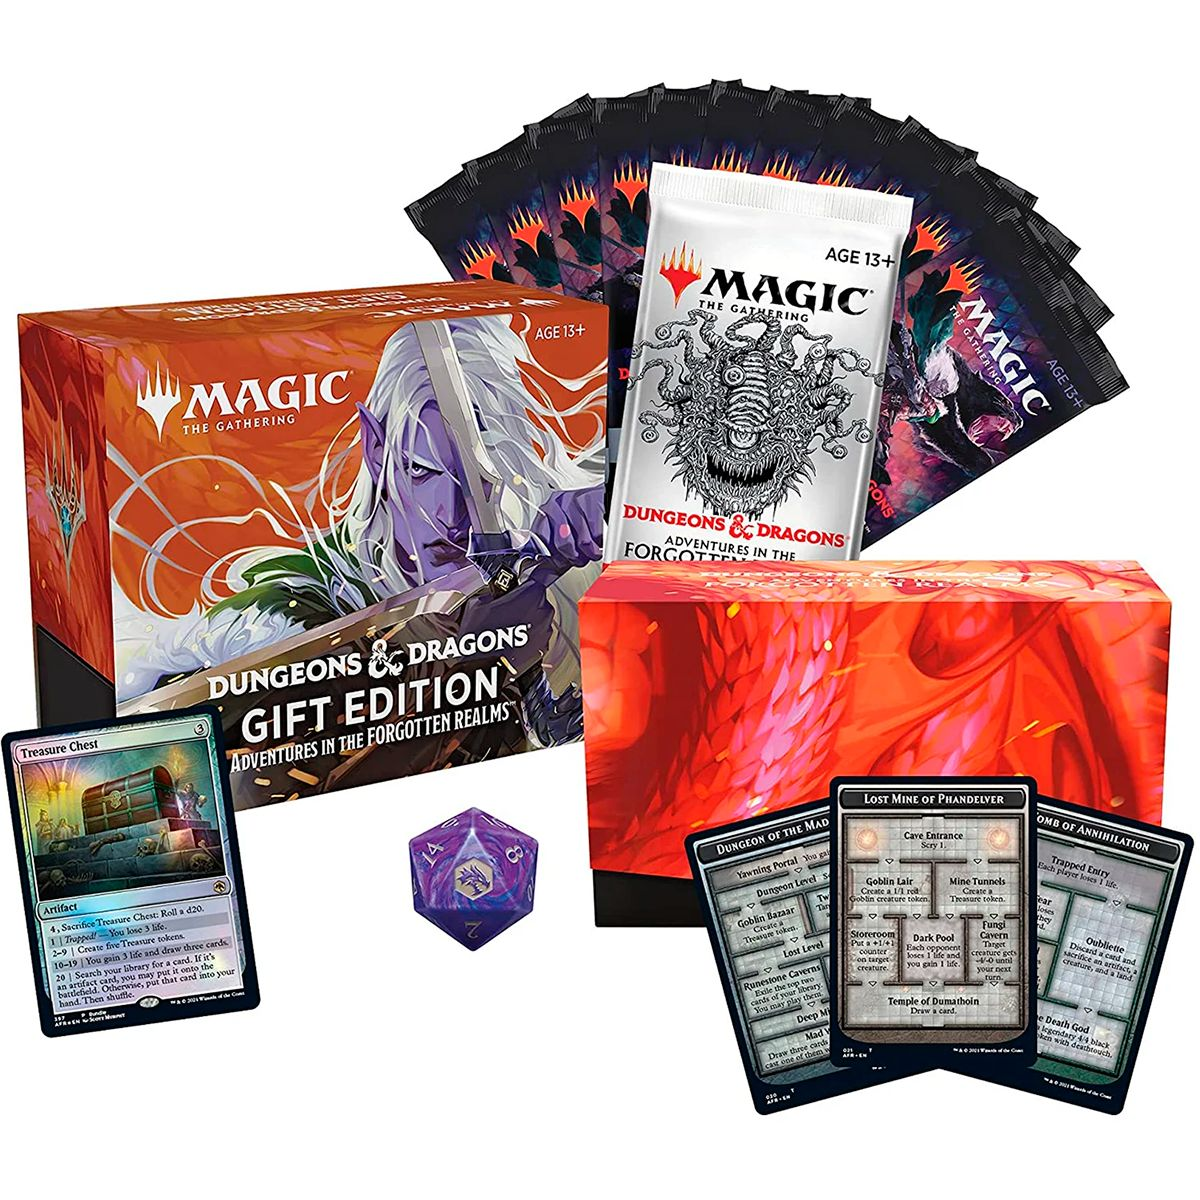 Magic Bundle Gift Edition Dungeons Dragons Forgotten Realms